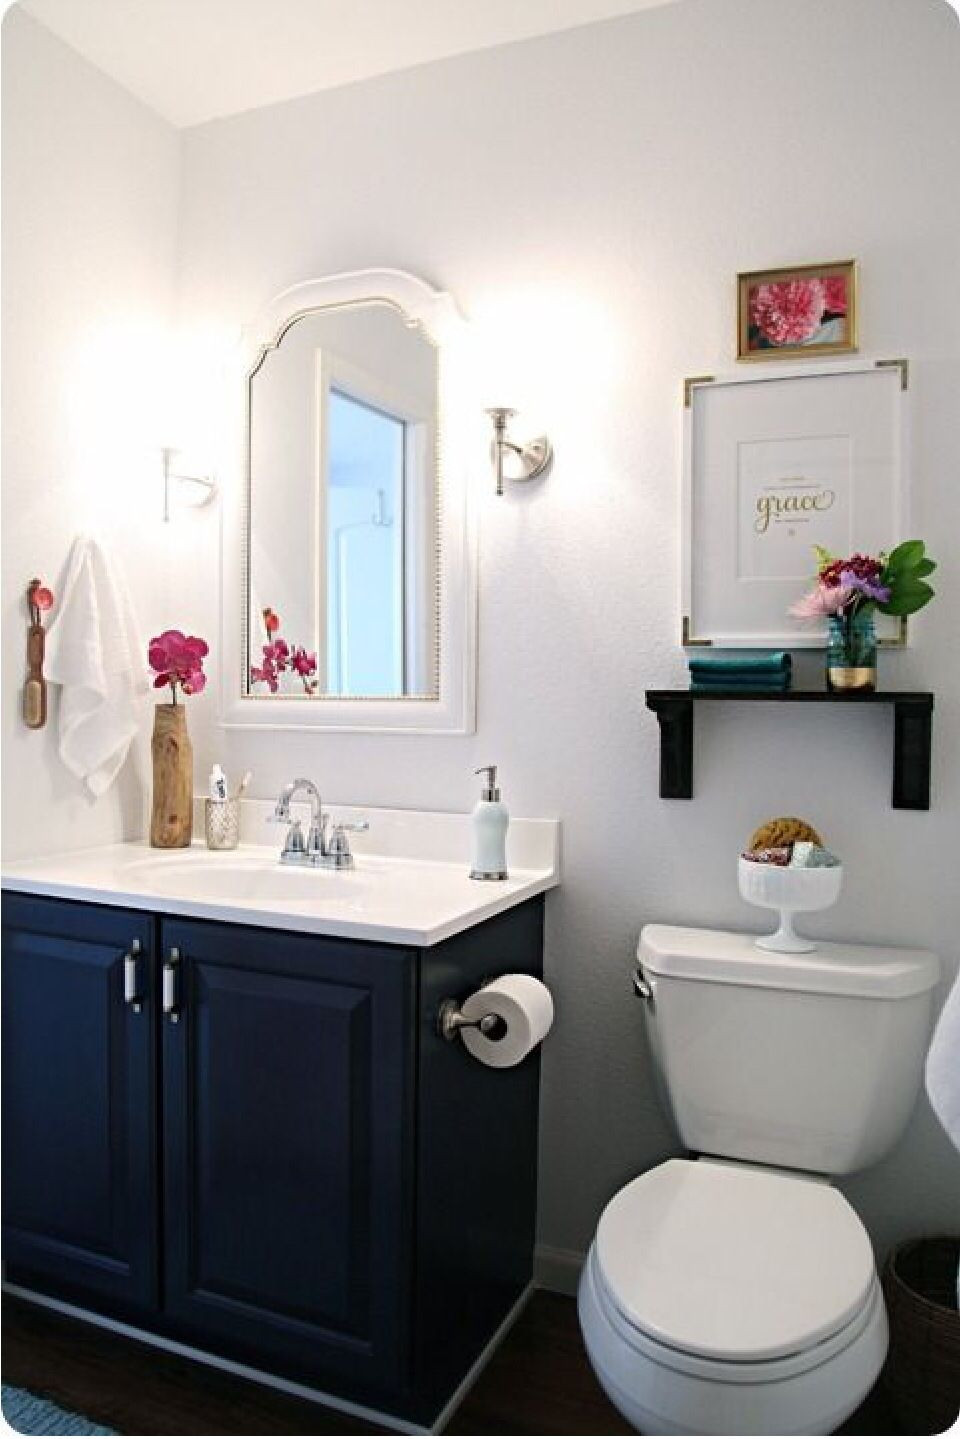 for united home bathrooms blue vanity eye largesize gallery vintage makeup images navy on bathroom decors s chucks of states cabinet vanities design